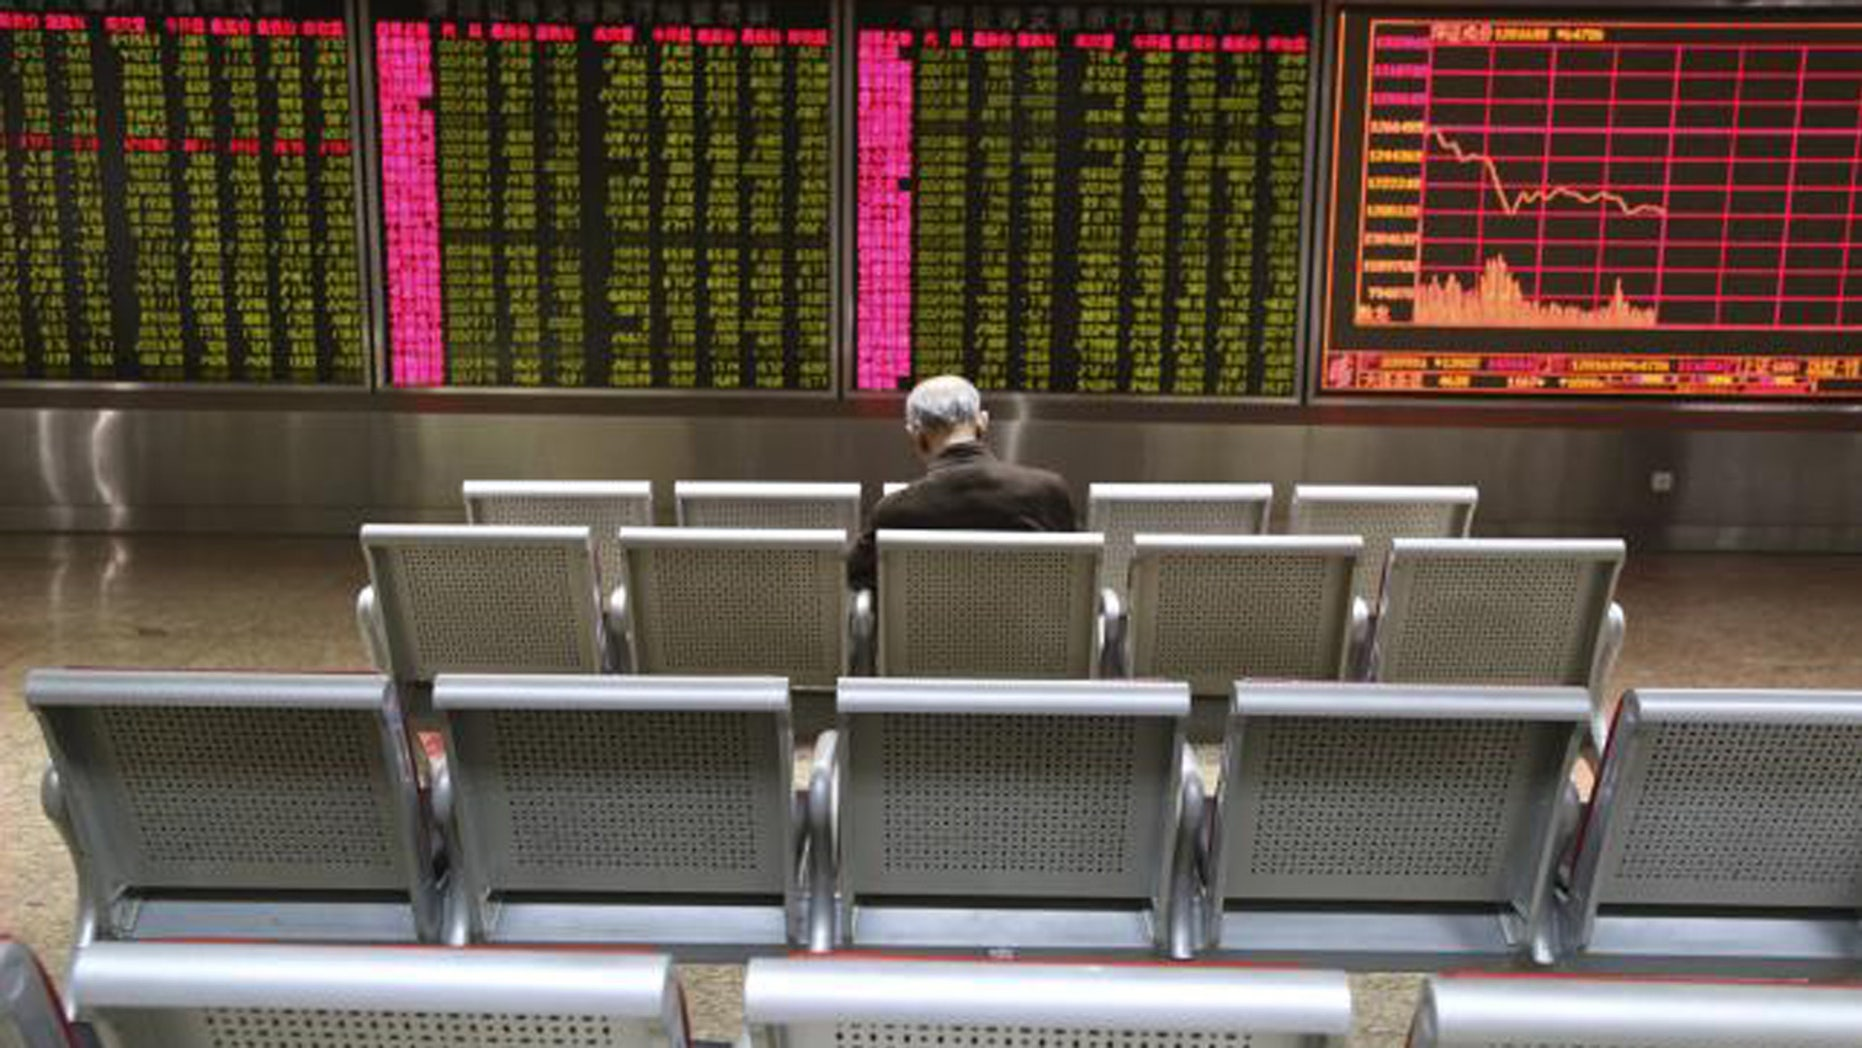 Jan. 4, 2016: An investor sits in front of a display board showing stock information at a brokerage house in Beijing. (Reuters/Li Sanxian)